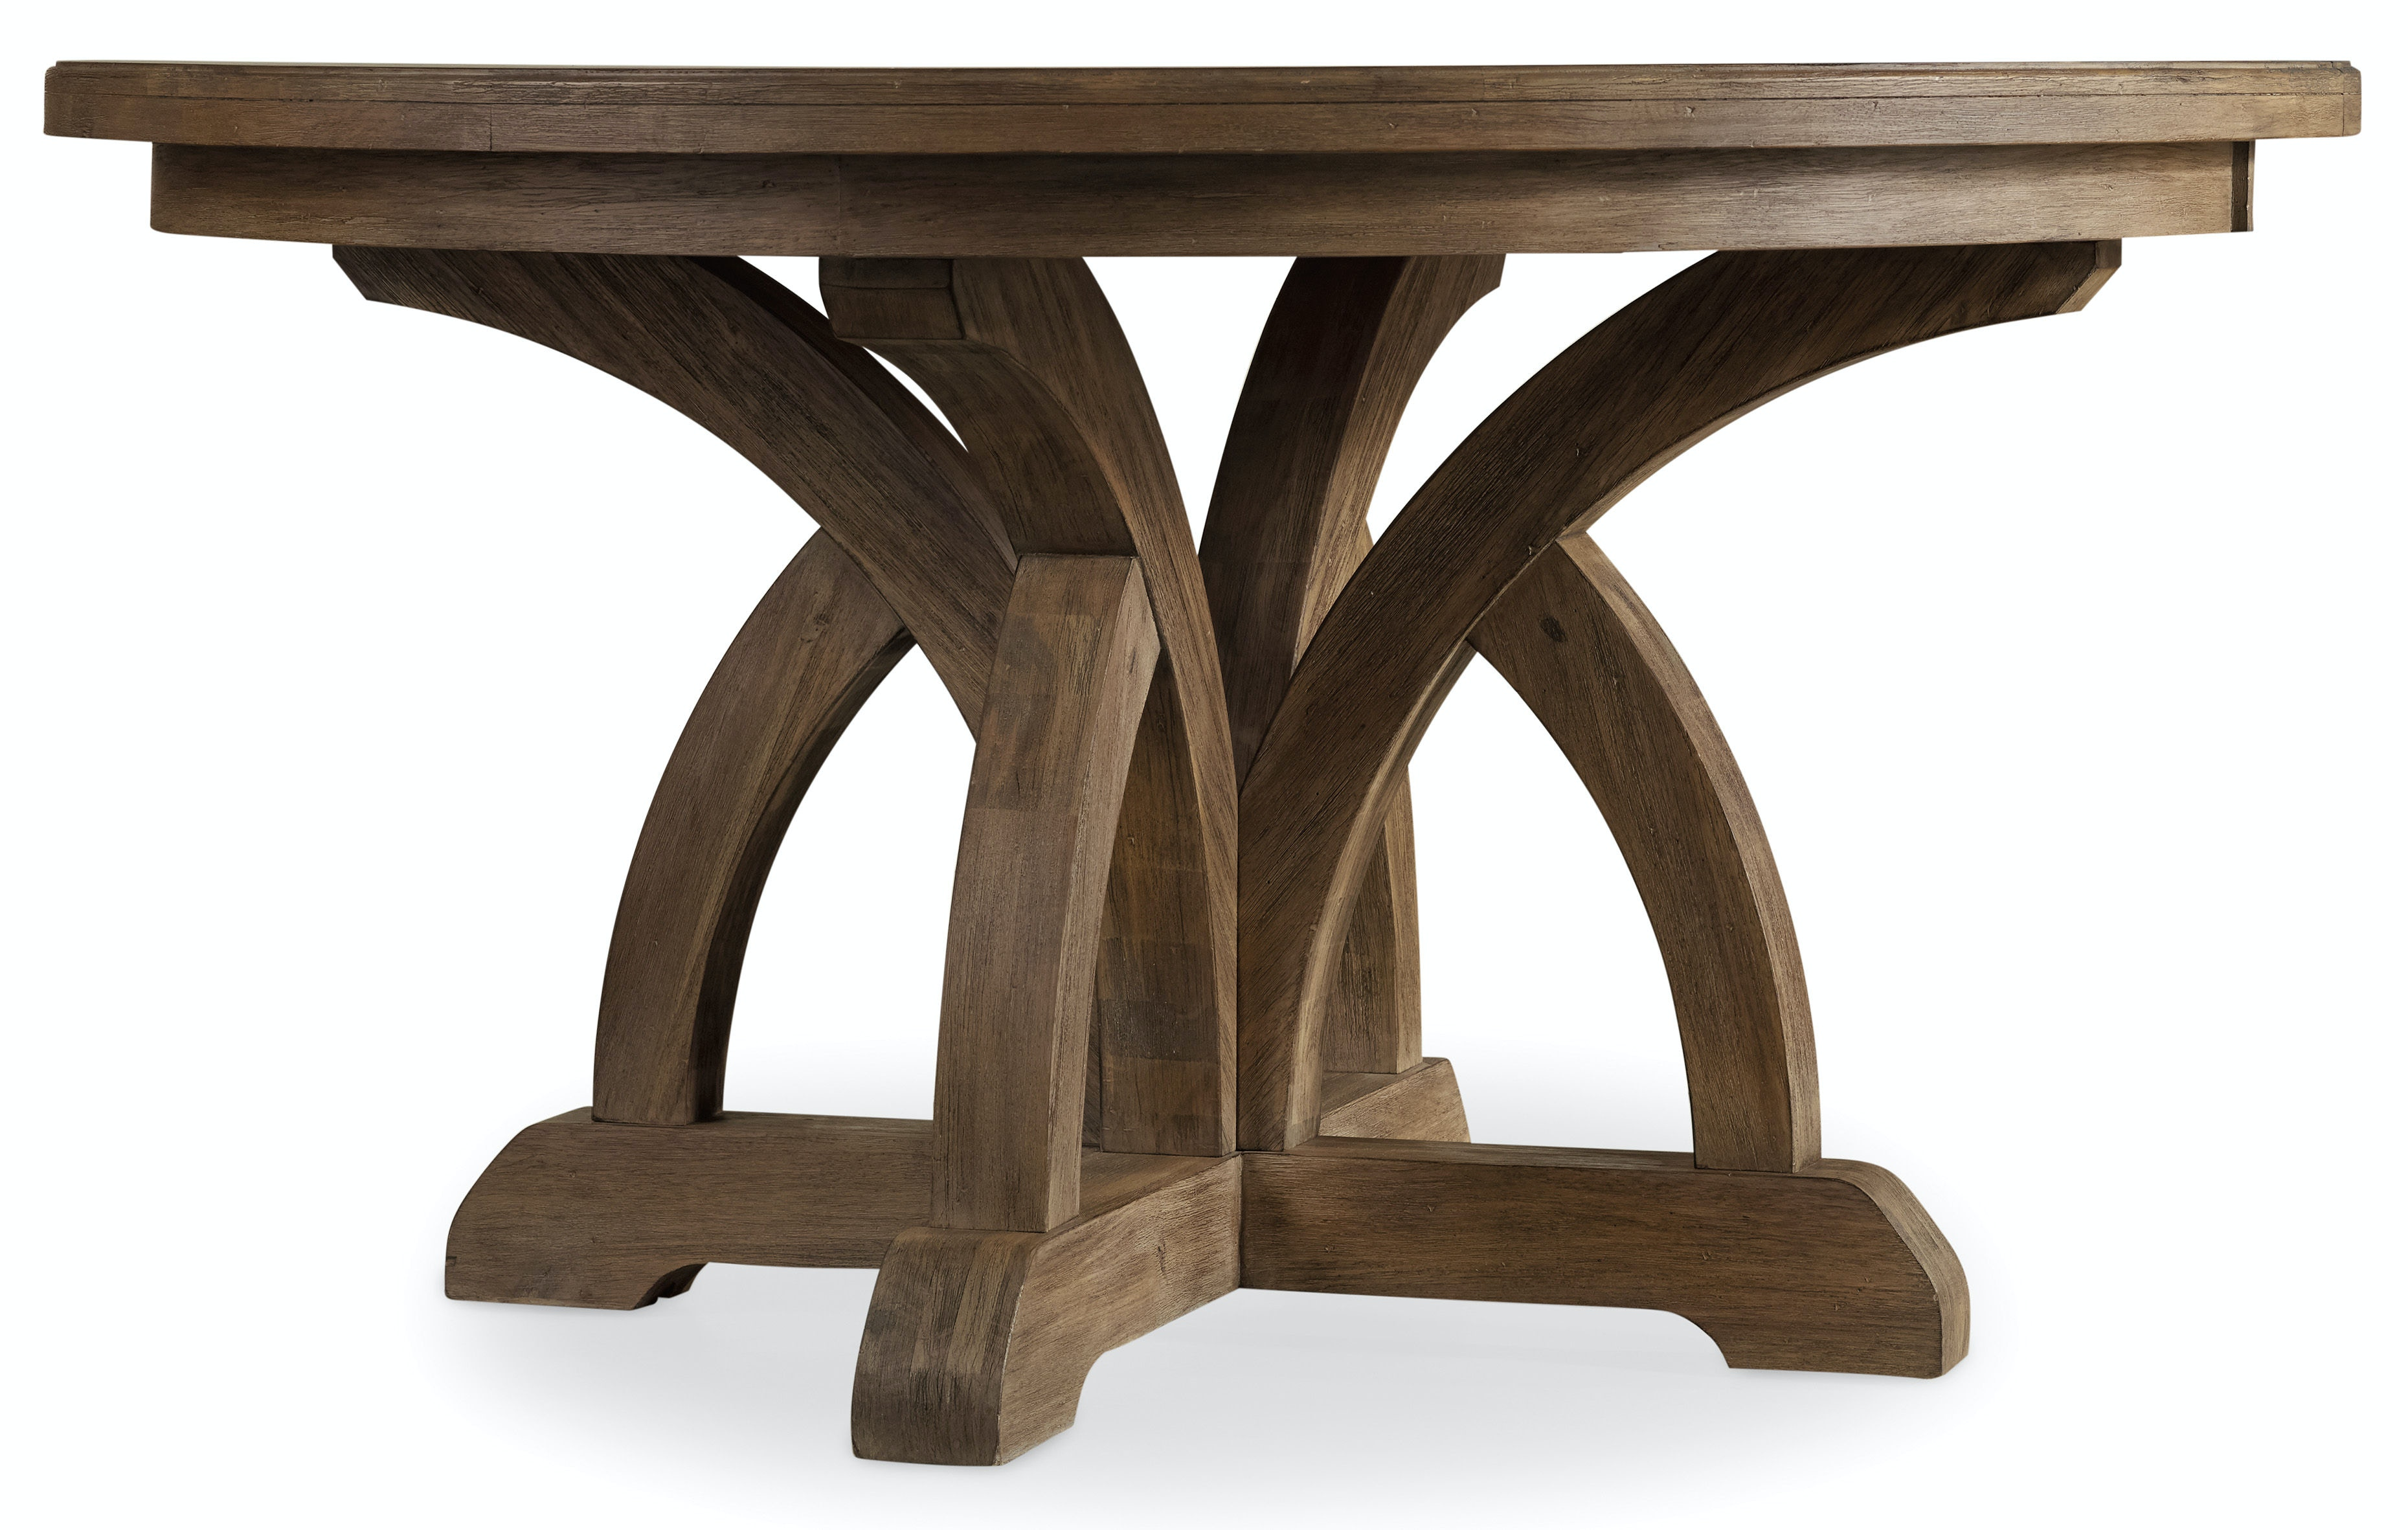 Hooker Furniture Corsica Round Dining Table W/1 18in Leaf 5180 75203